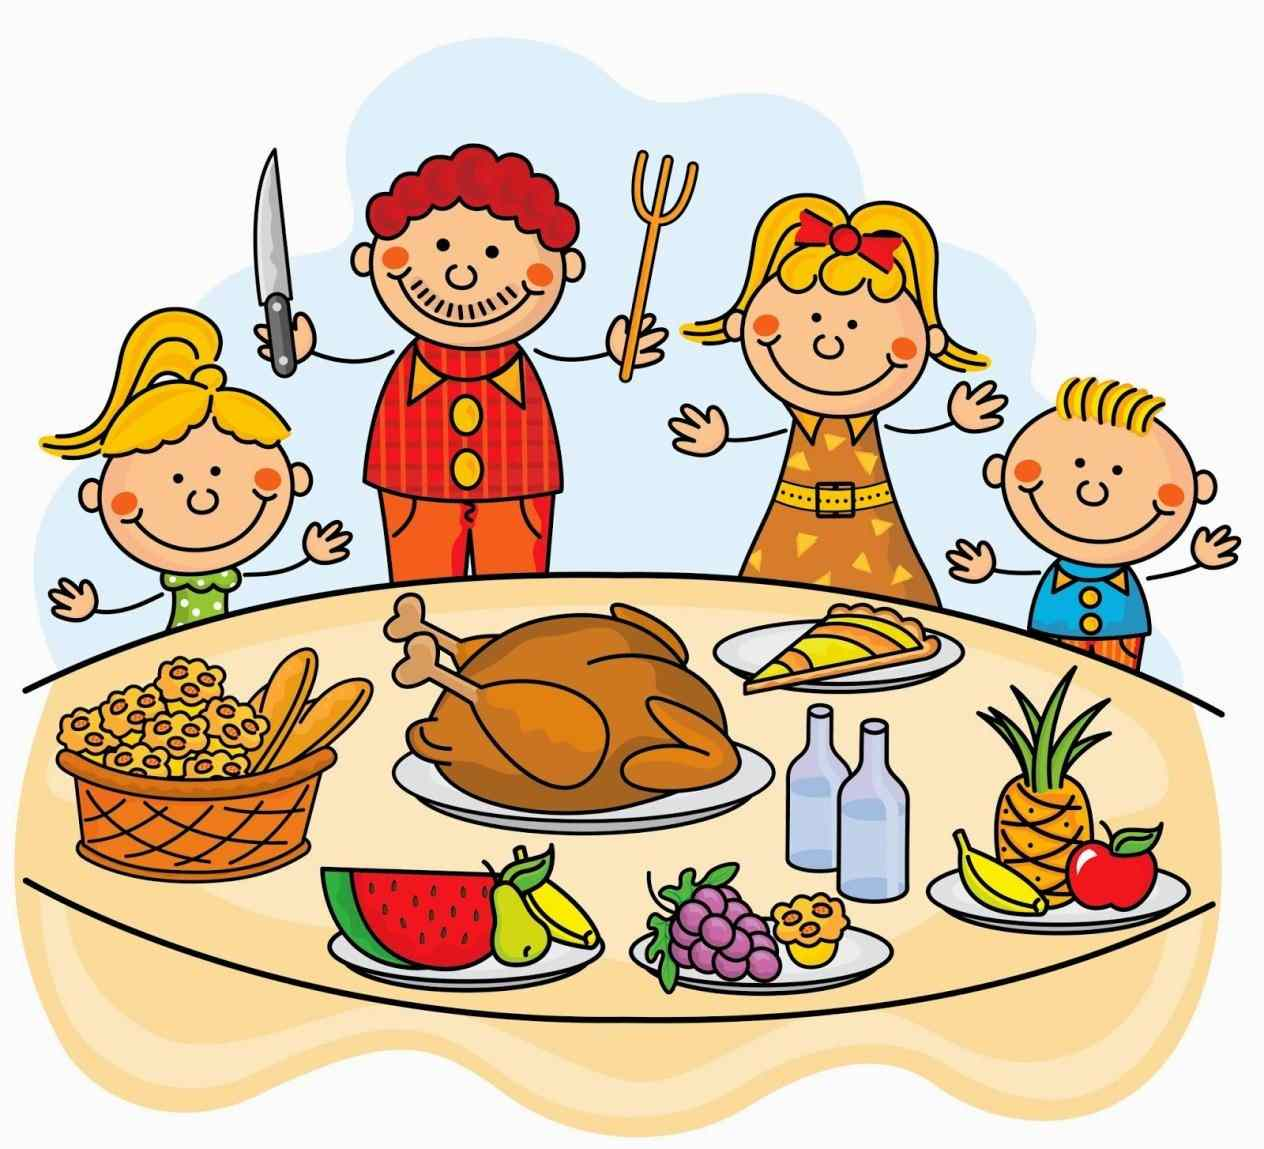 thanksgiving food clipart at getdrawings com free for personal use rh getdrawings com dinner clip art free dinner clip art border